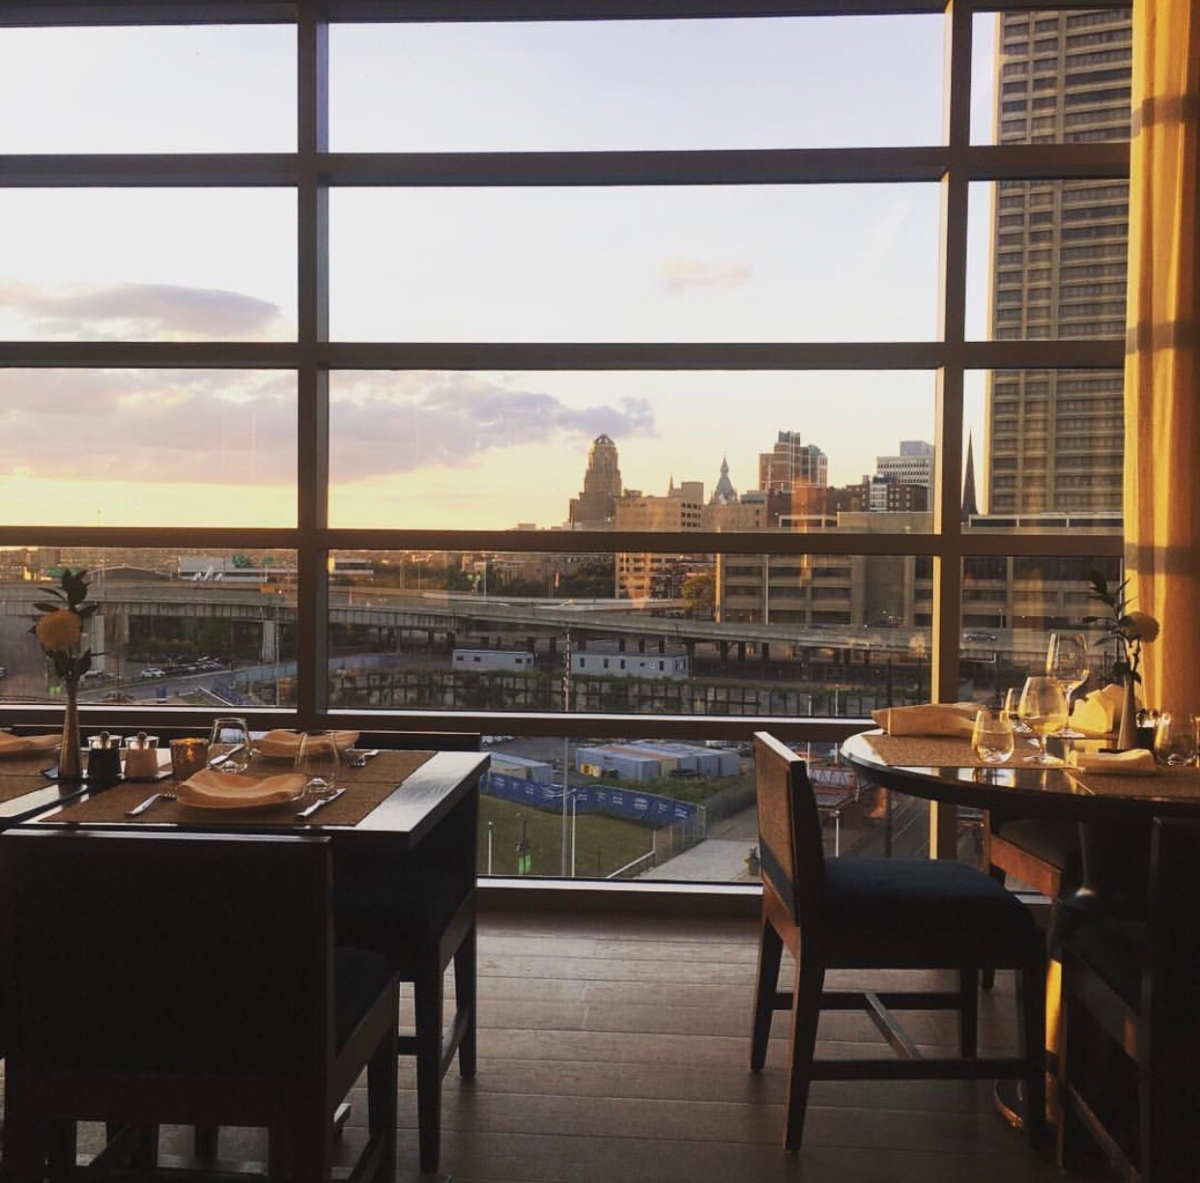 Date Night: The Best View of Buffalo Is Here